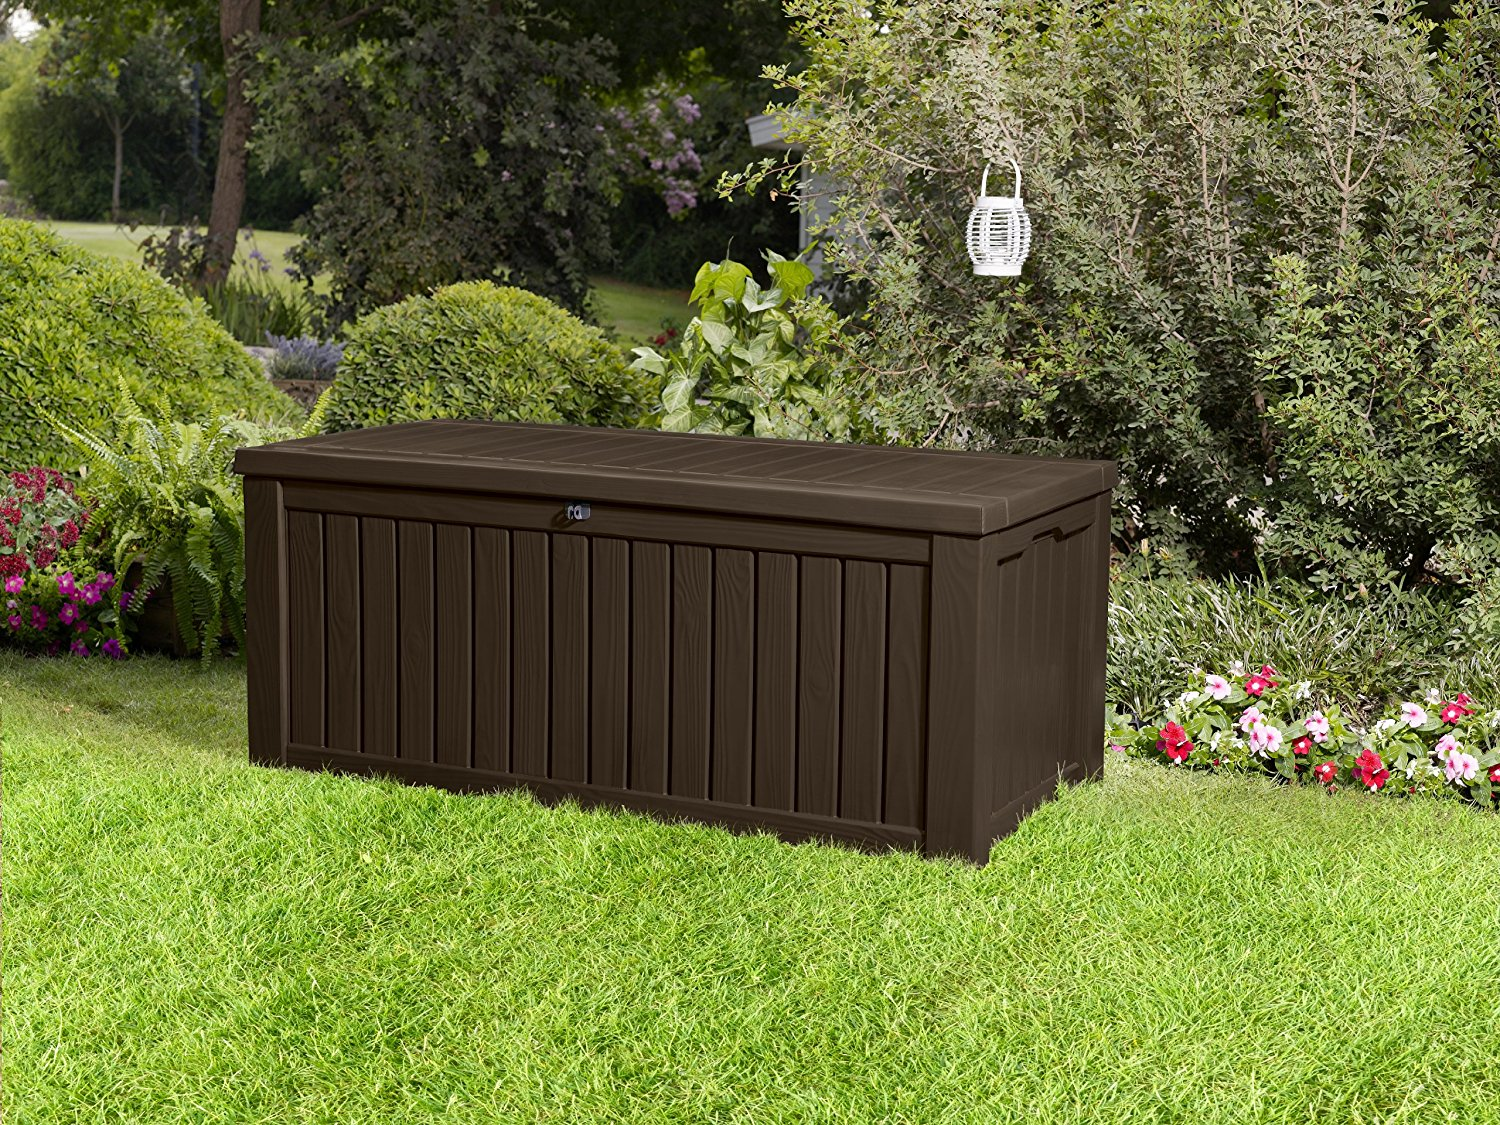 Keter Box Xxl Keter Box Xxl Simple Image Of Keter Fusion Garden Shed In